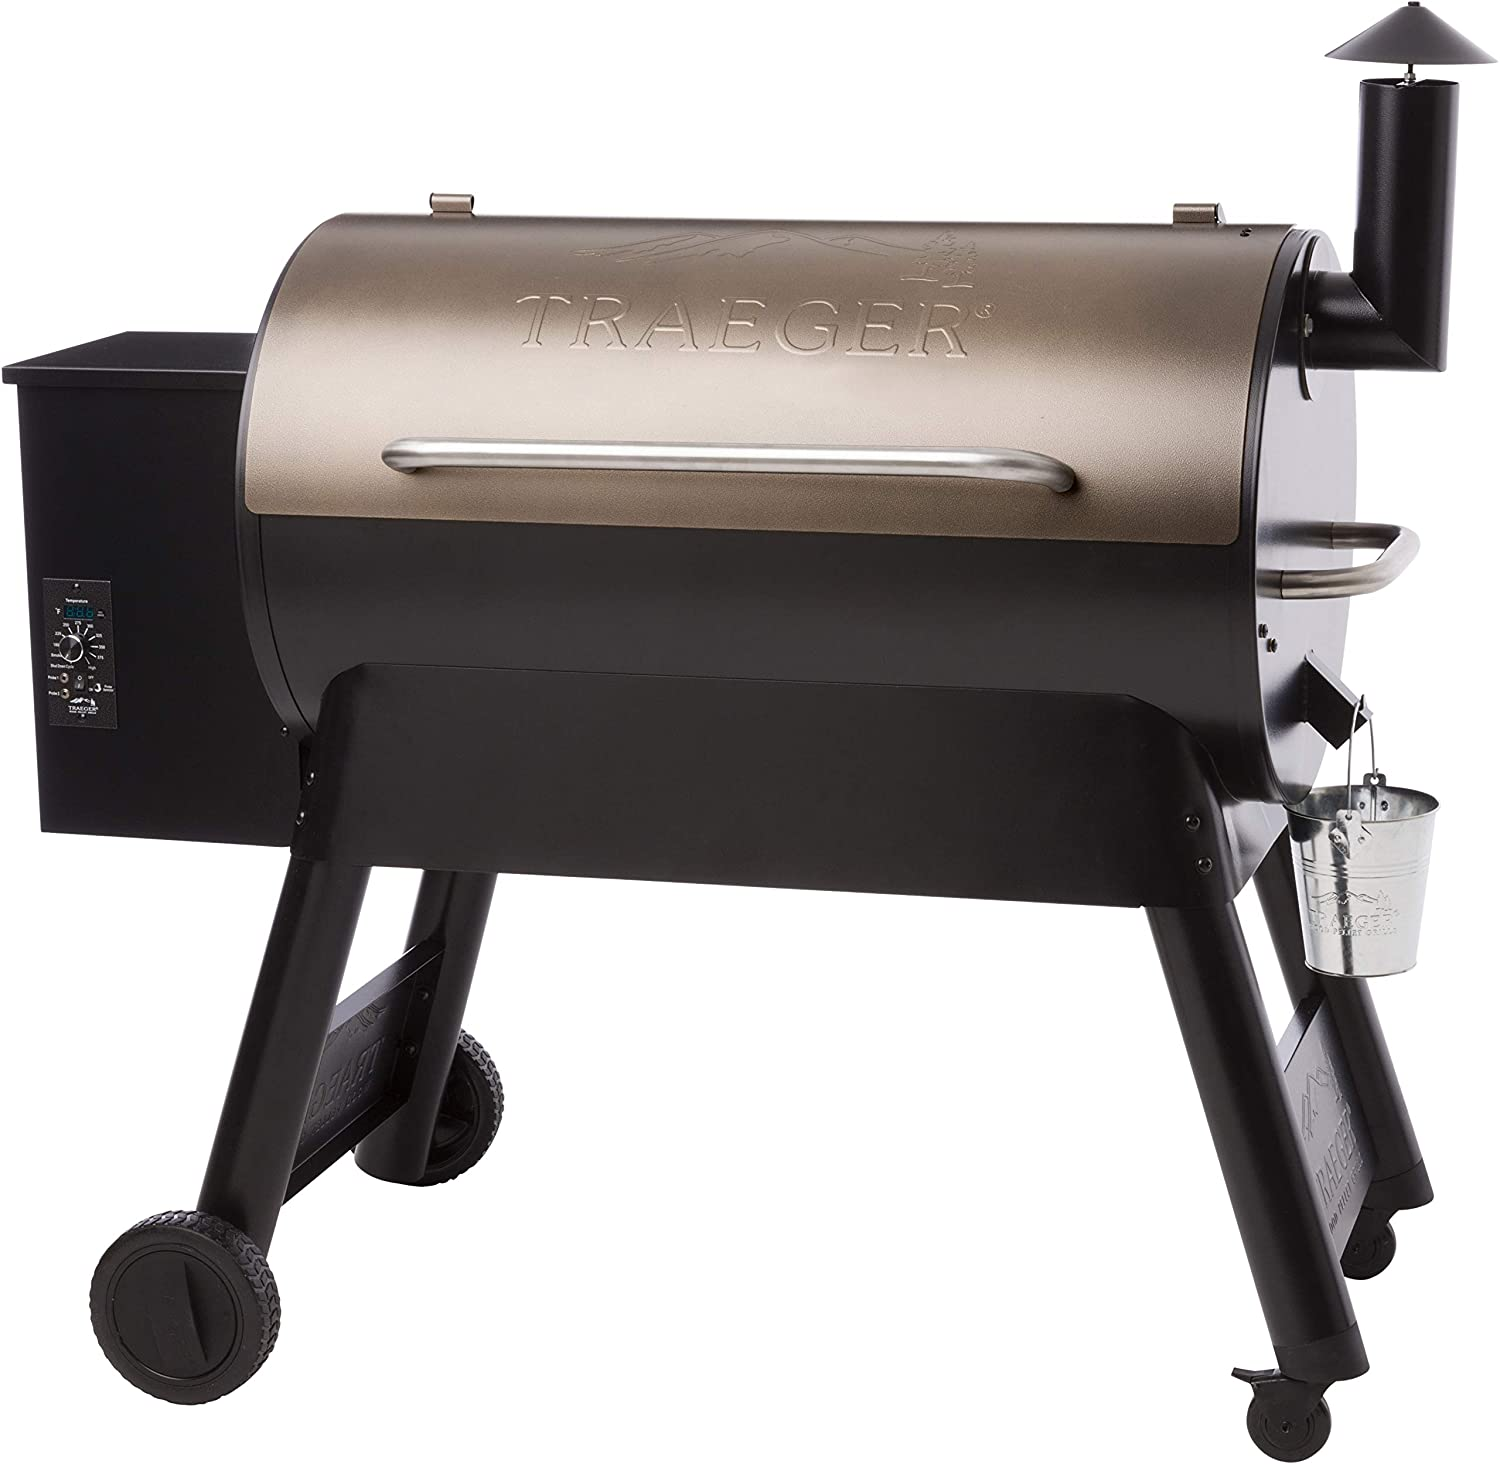 Traeger TFB88PZBO Pellet Grill and Smoker